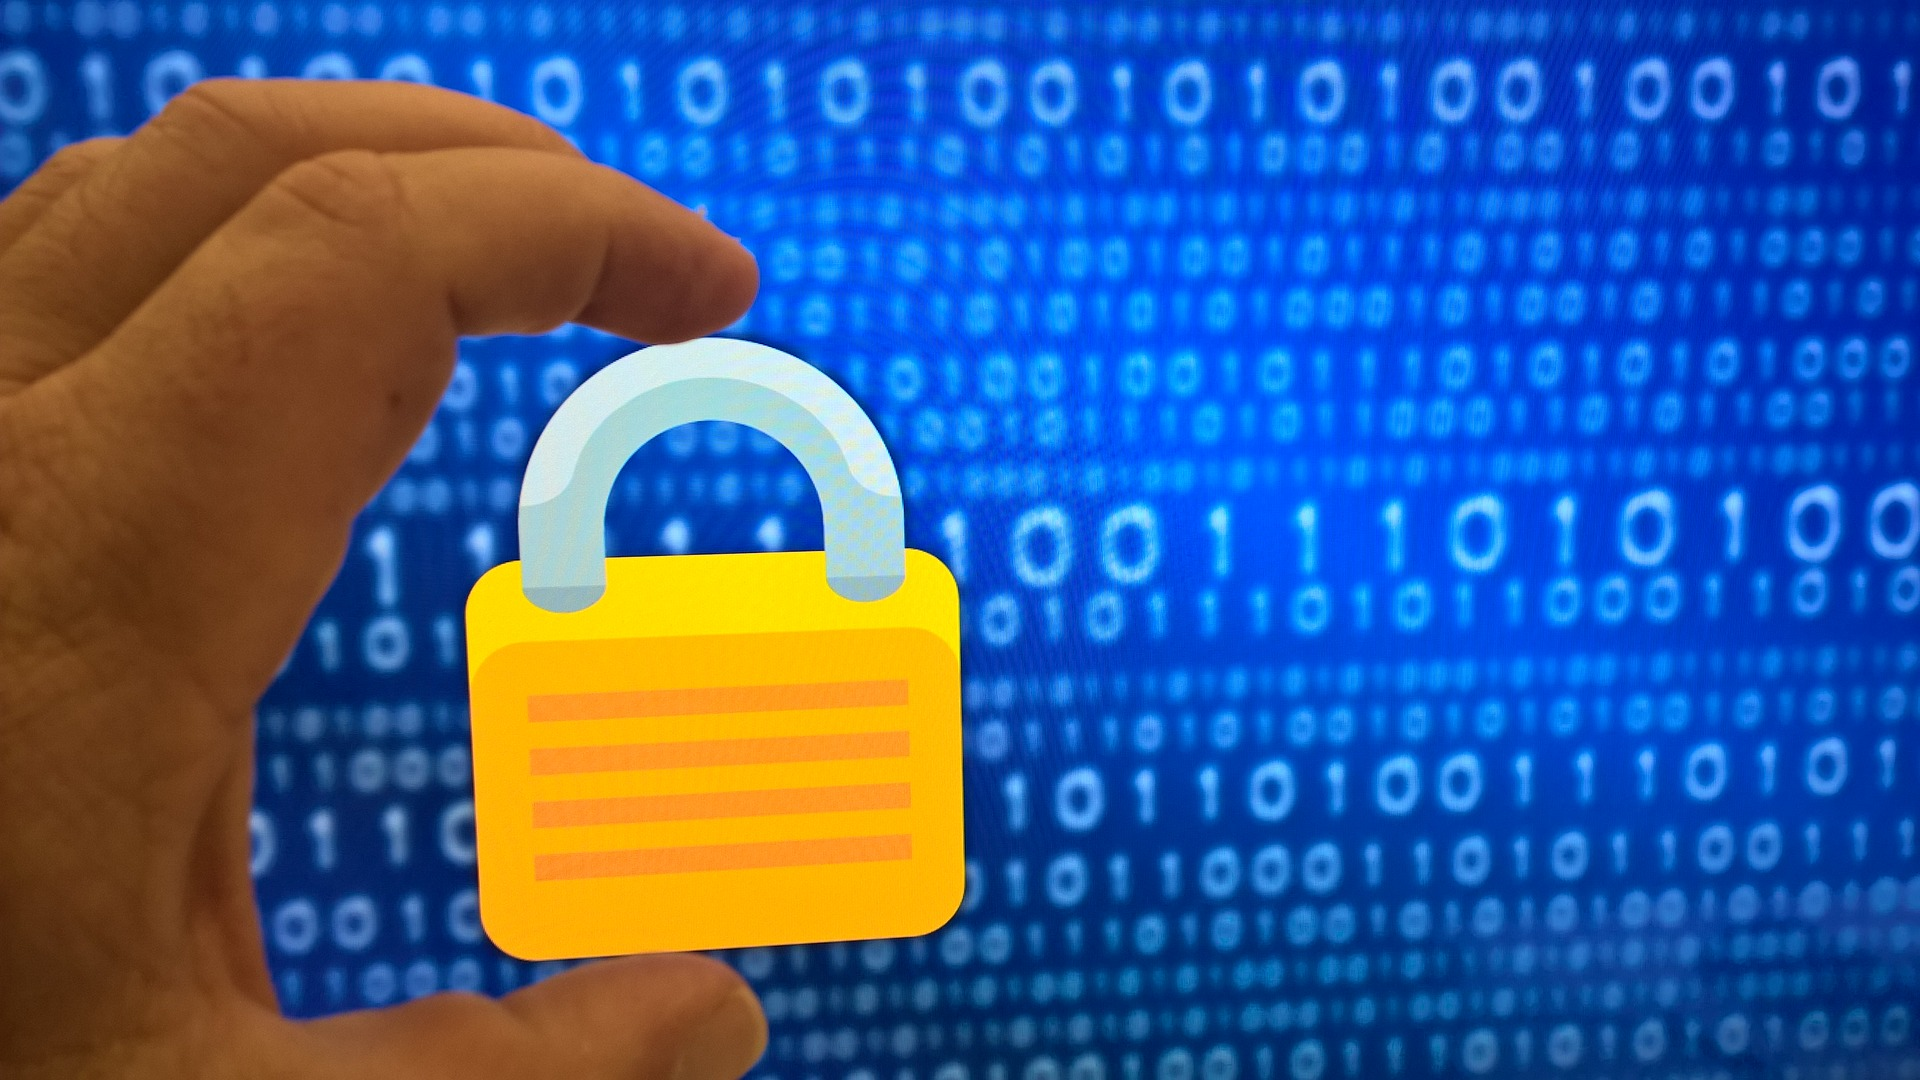 Top 10 tips for safer, more secure web browsing